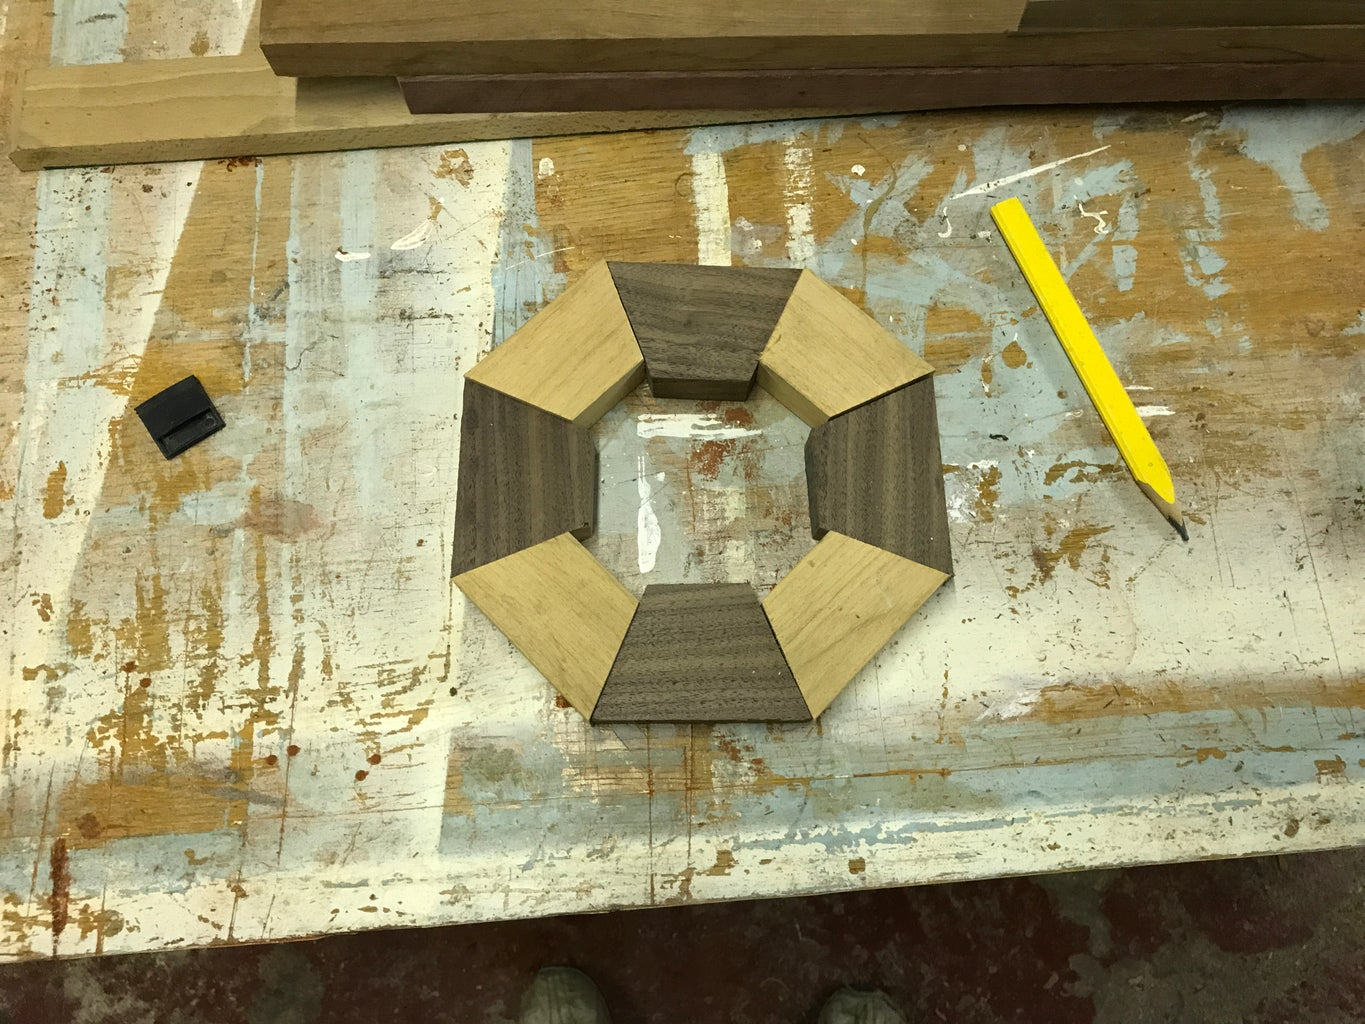 Gluing Up the Segmented Layers